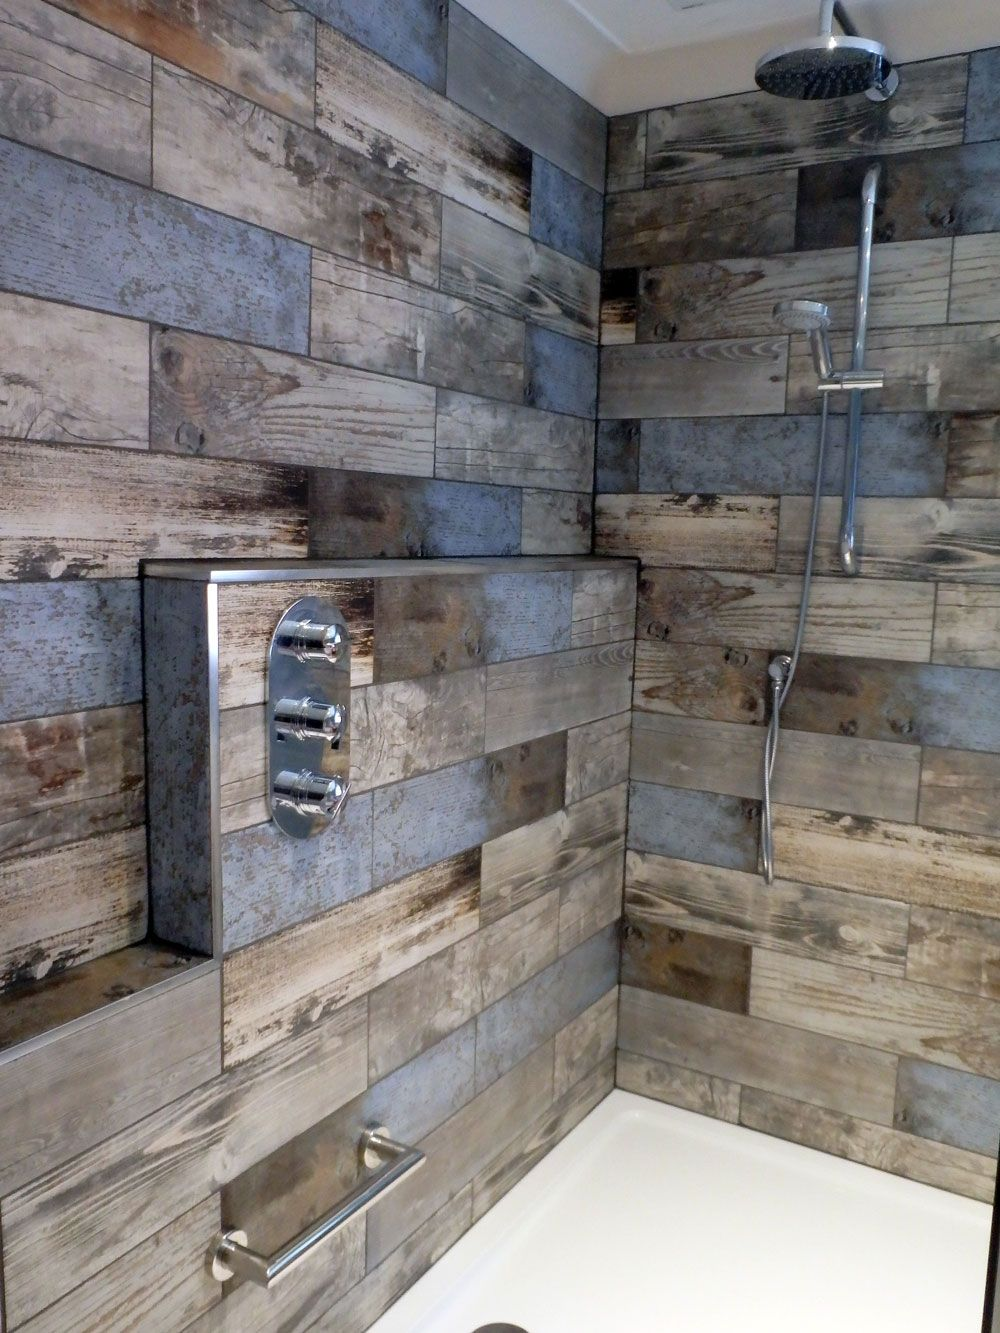 wood effect tiles in shower area | House/Room designs ...